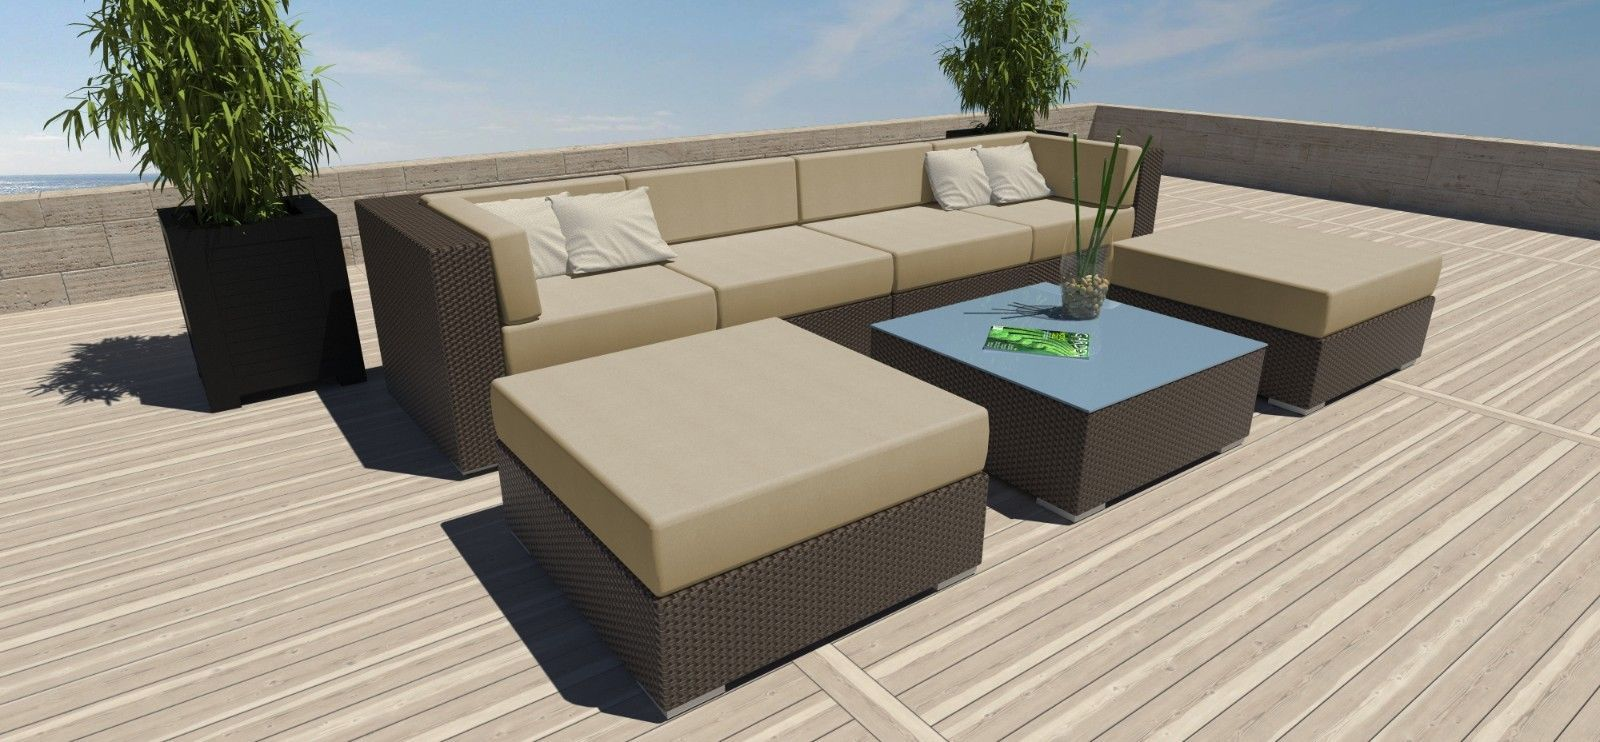 7 PC Modern Outdoor All Weather Wicker Rattan Patio Set